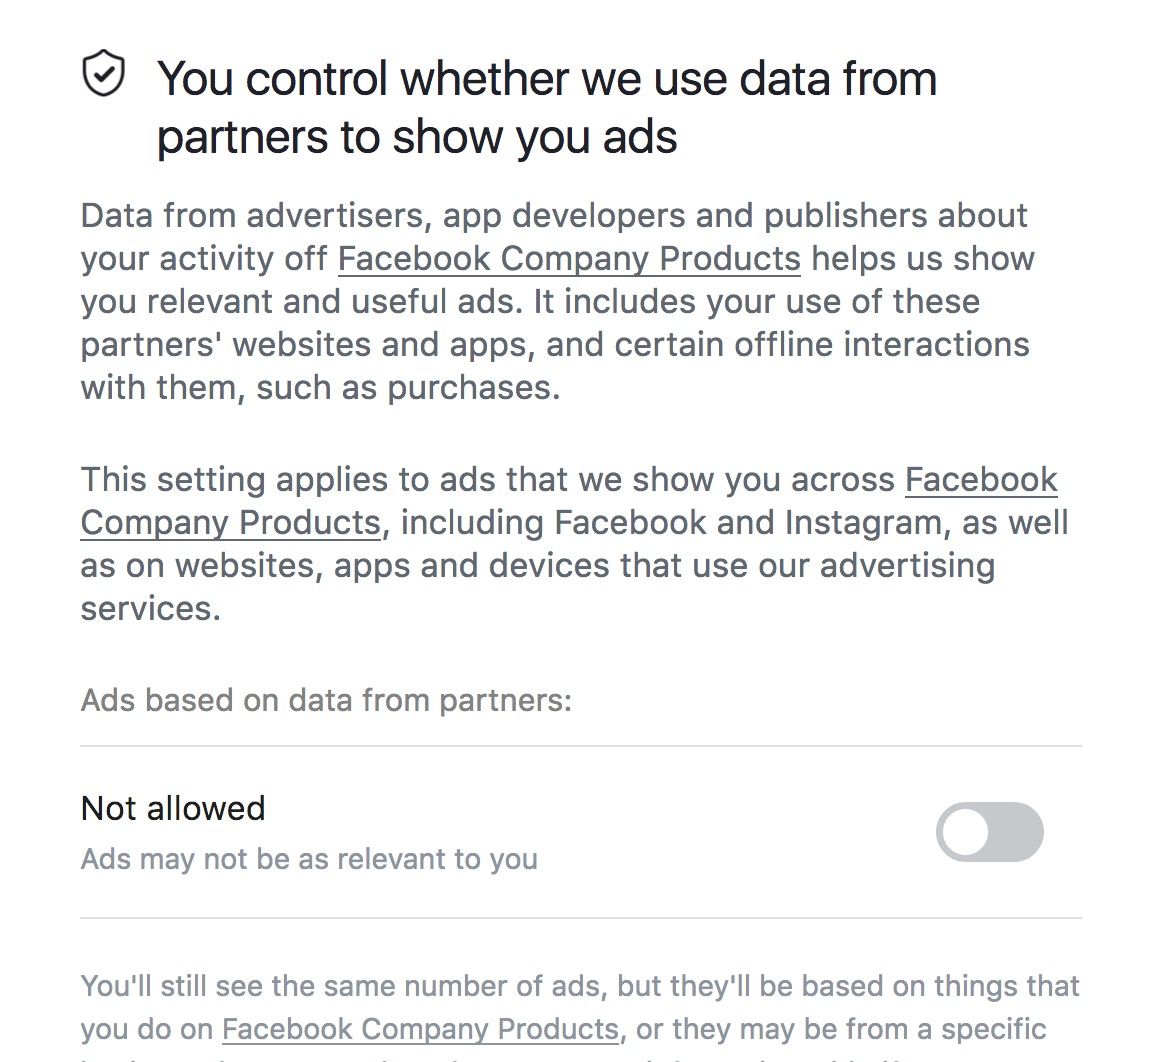 2018 June Facebook advert settings off